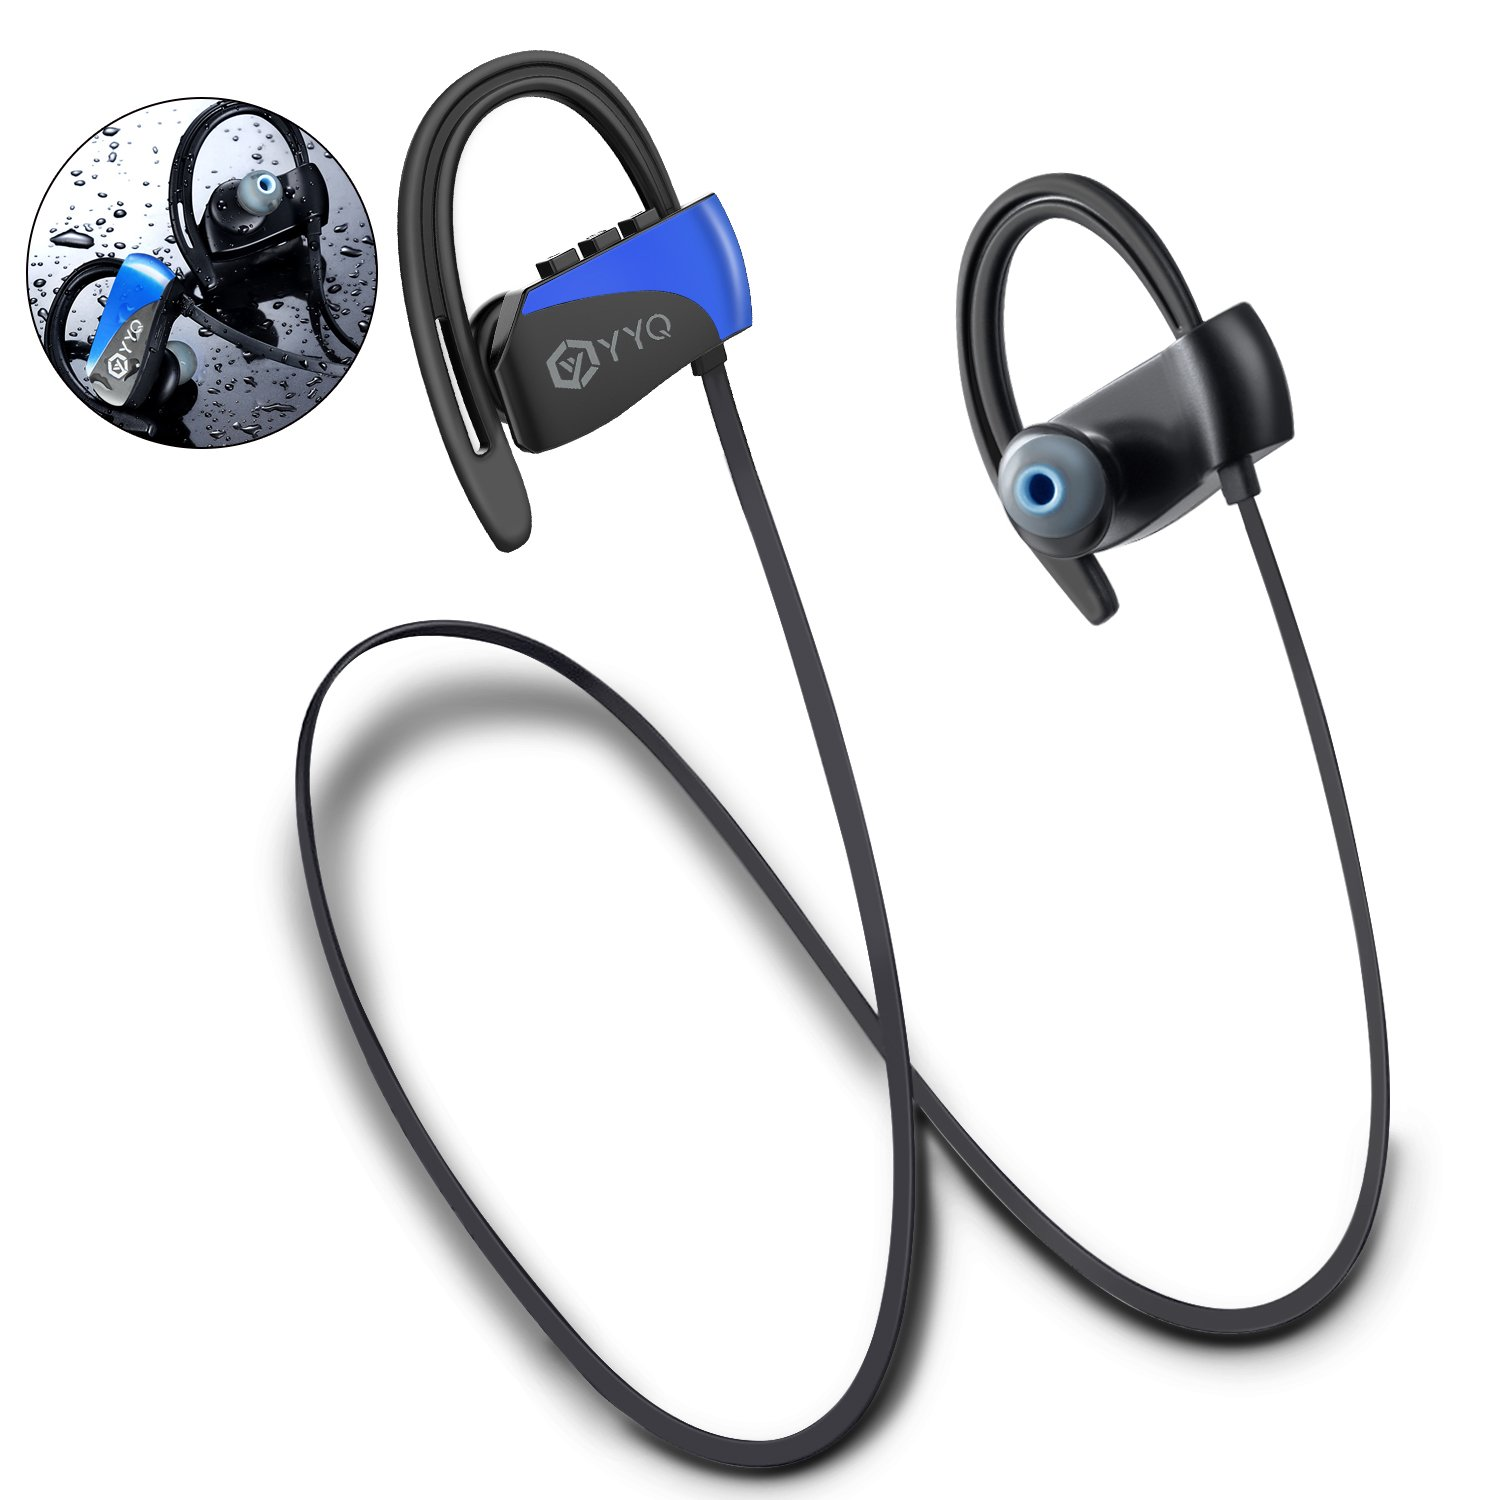 Bluetooth Headphones, Wireless Magnetic Earbuds Sports Sweatproof Earphones Stereo and Noise Cancelling for Gym Workout